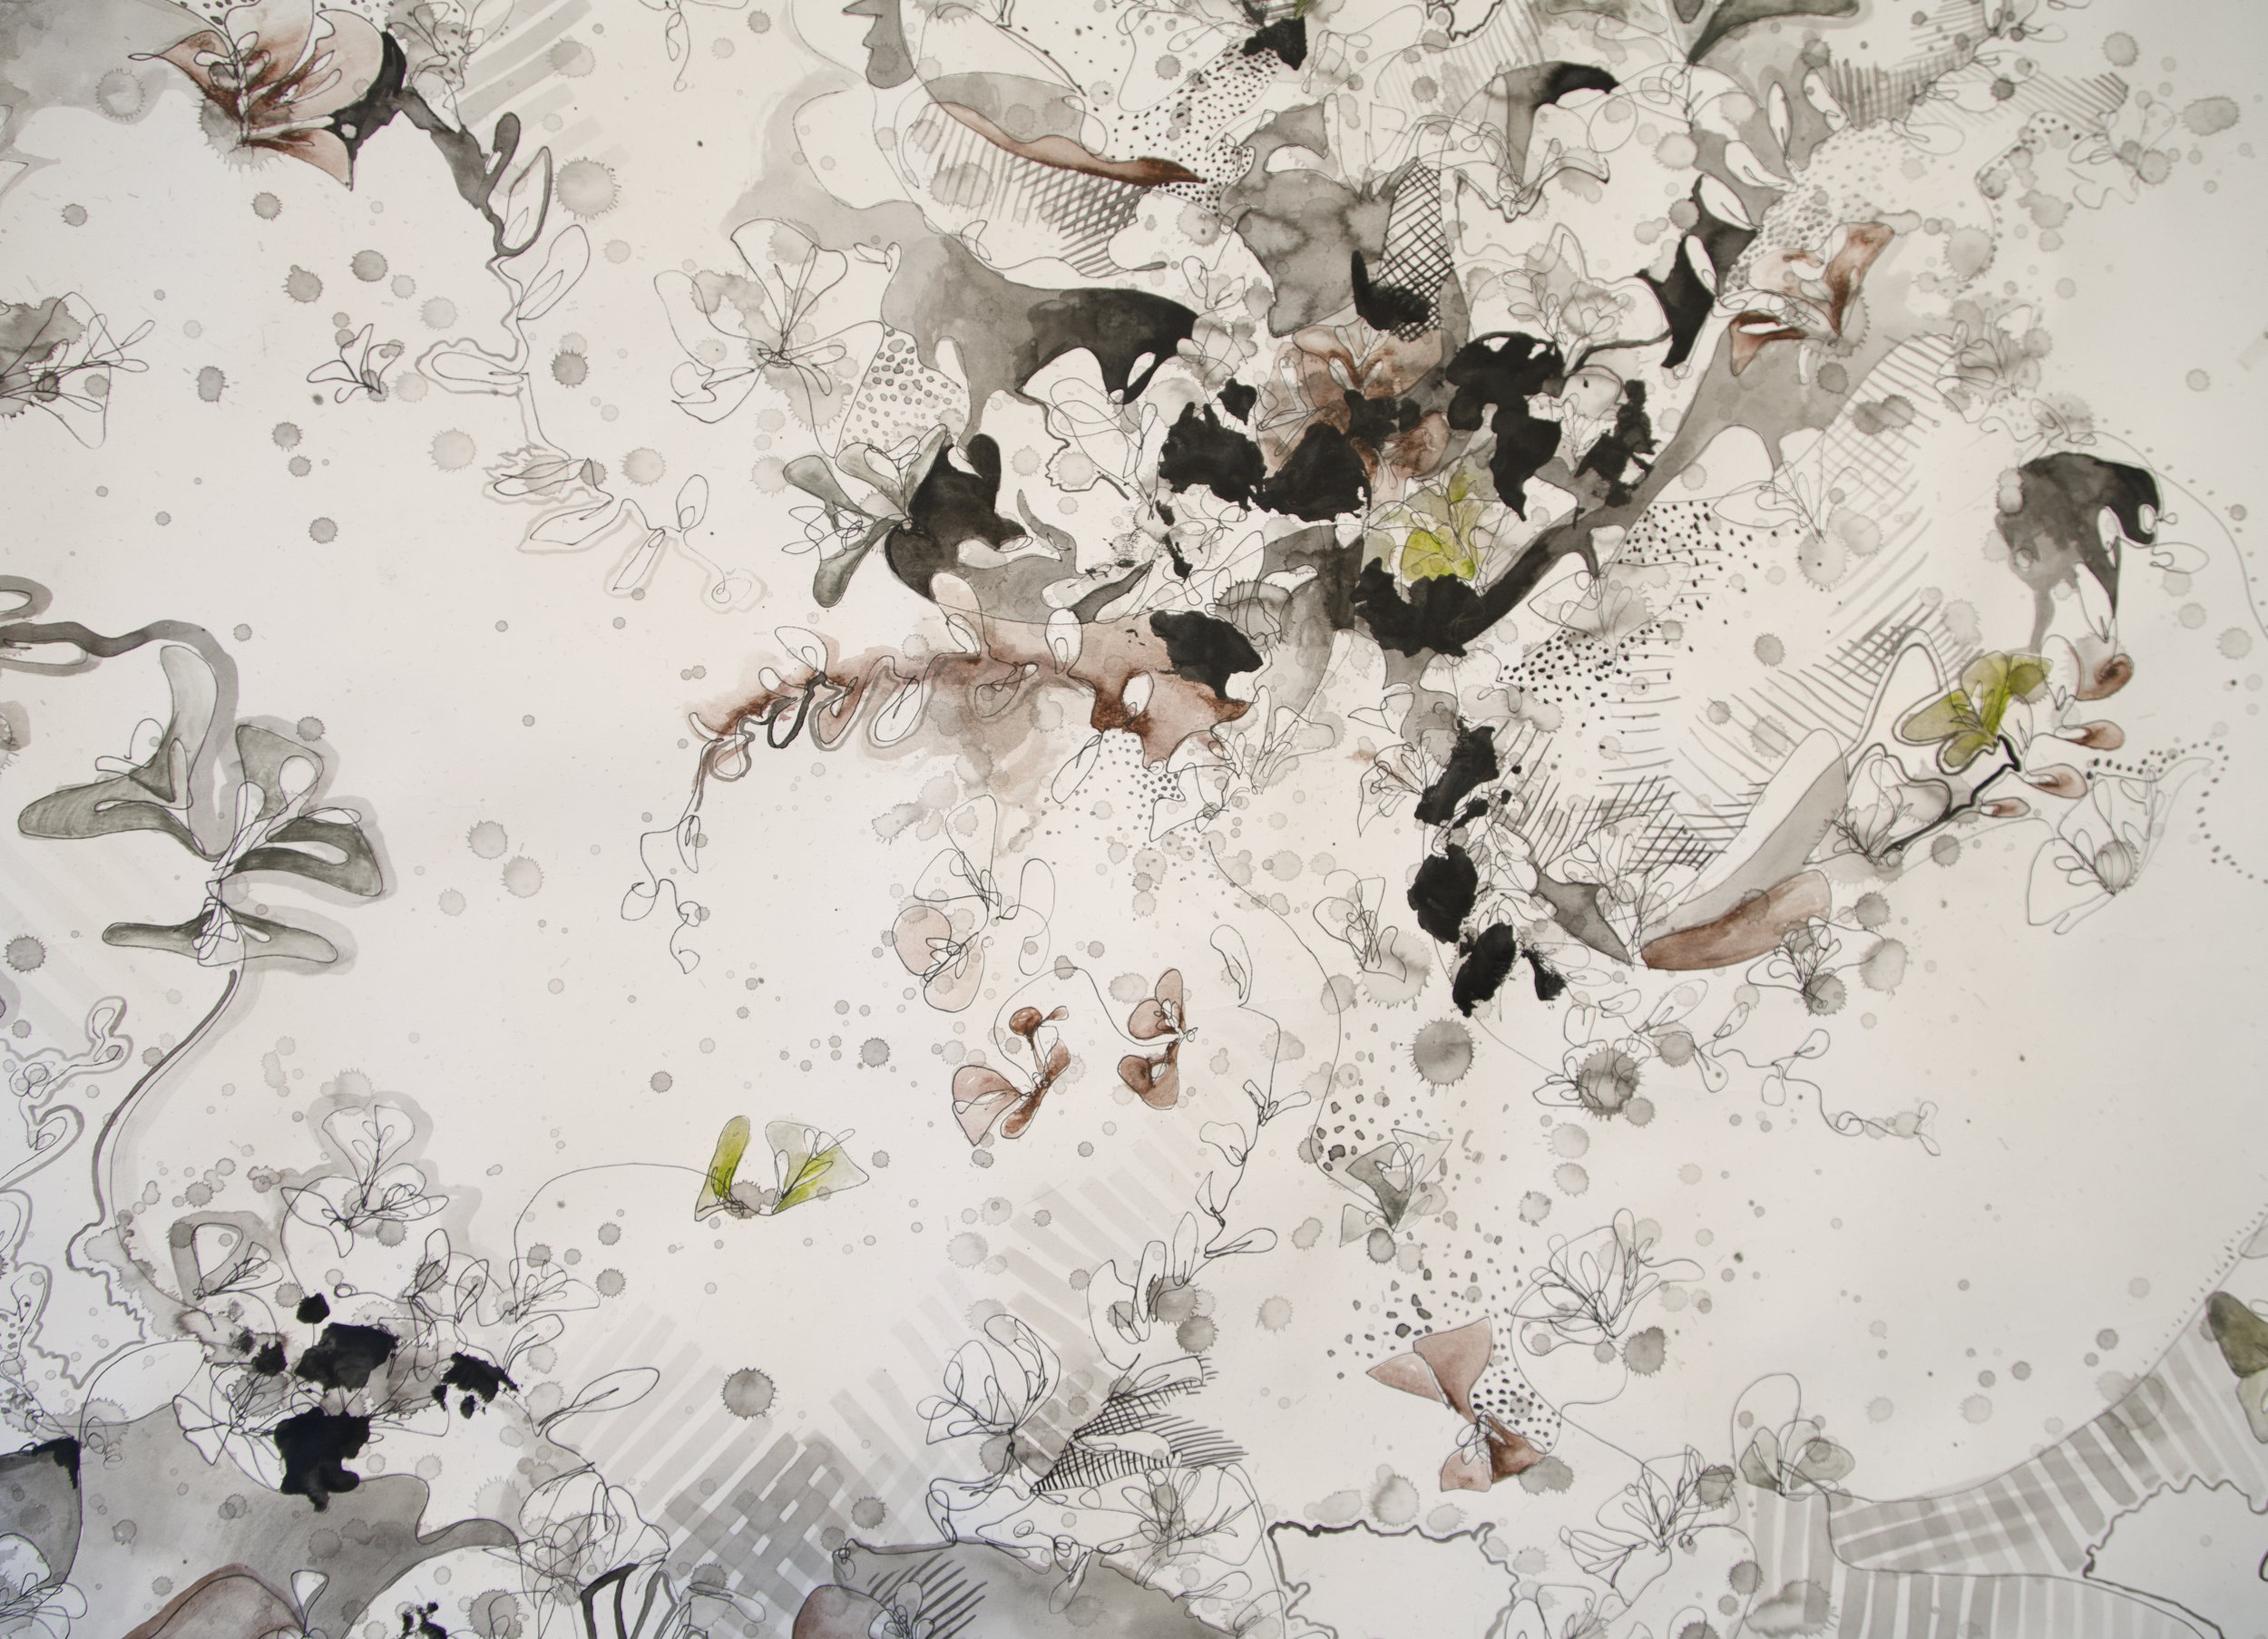 Growing - 4ft x 5ft - March 2016 - Ink, Watercolour, PaperThe scale of the page in Growing (2015) creates a sense of wild overgrowth; the viewer is surrounded by layers of vegetation, ink splatters, and patterns.